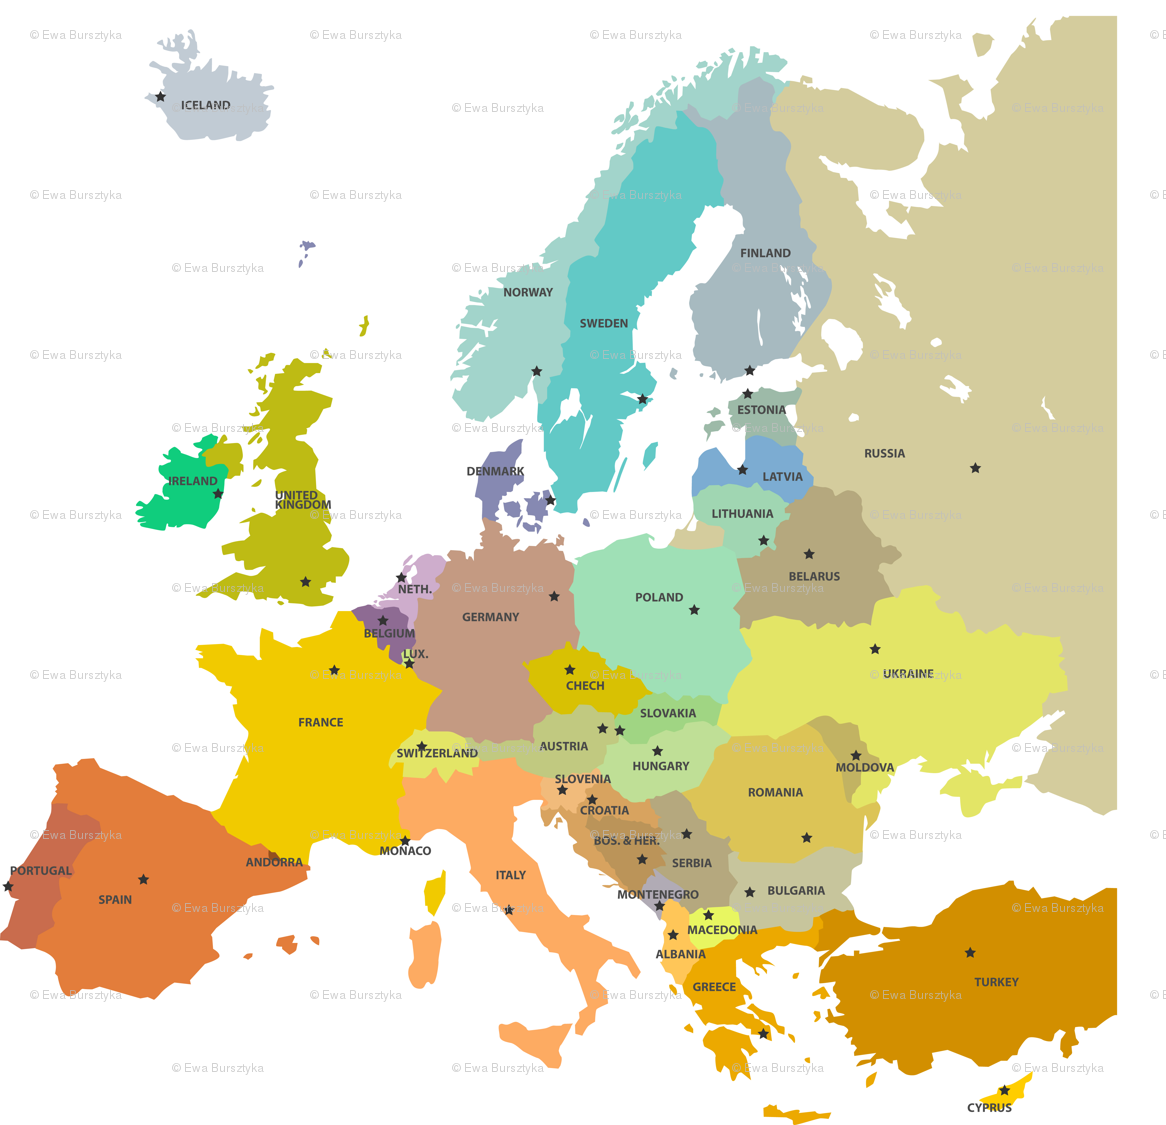 Europe Map Wallpapers - Top Free Europe Map Backgrounds ...